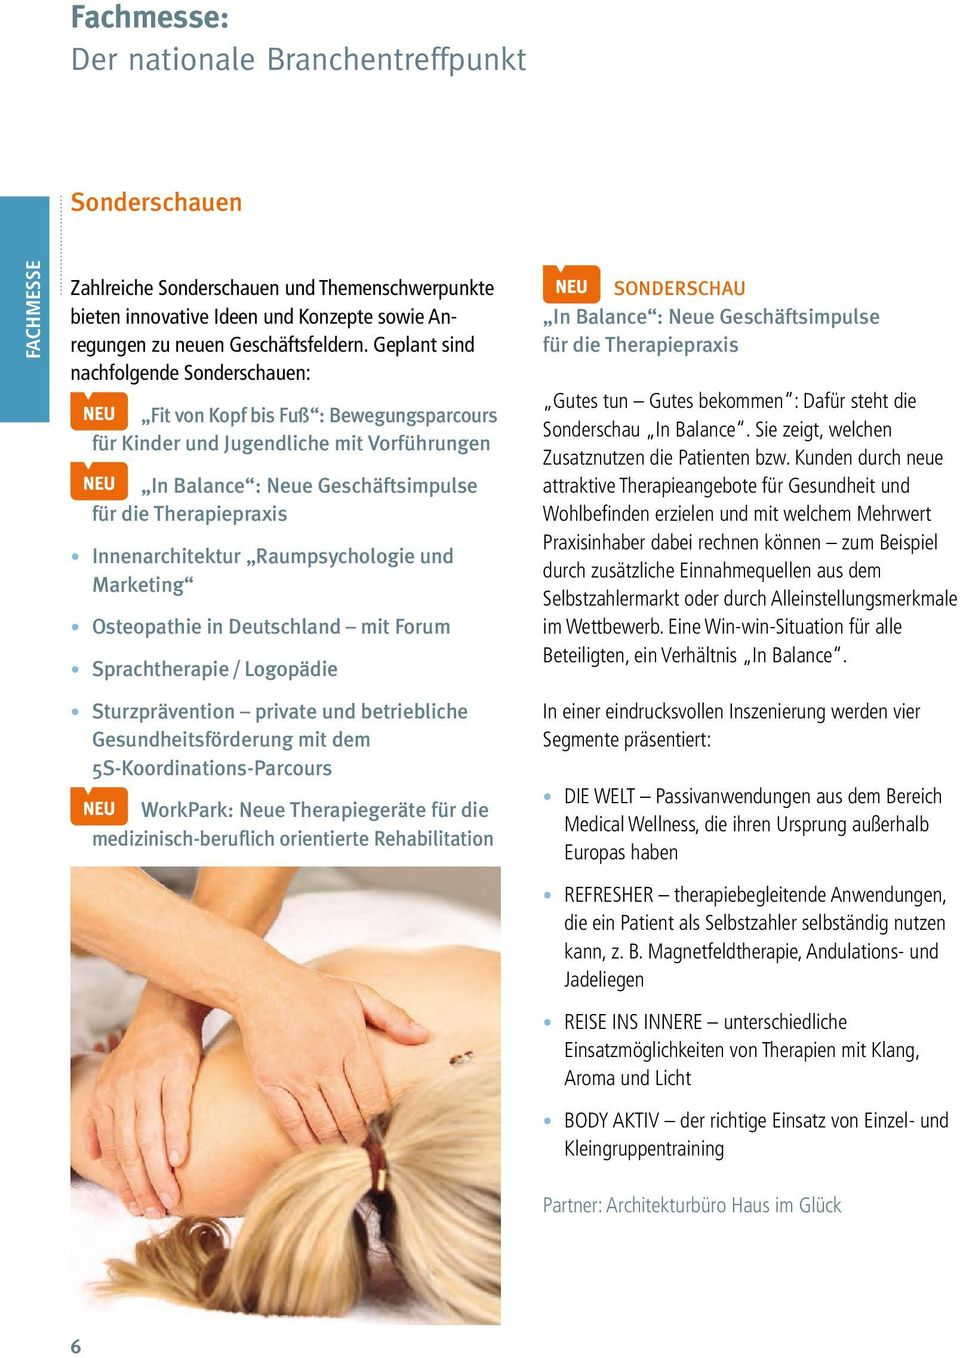 Innenarchitektur Raumpsychologie und Marketing Osteopathie in Deutschland mit Forum Sprachtherapie / Logopädie Sturzprävention private und betriebliche Gesundheitsförderung mit dem